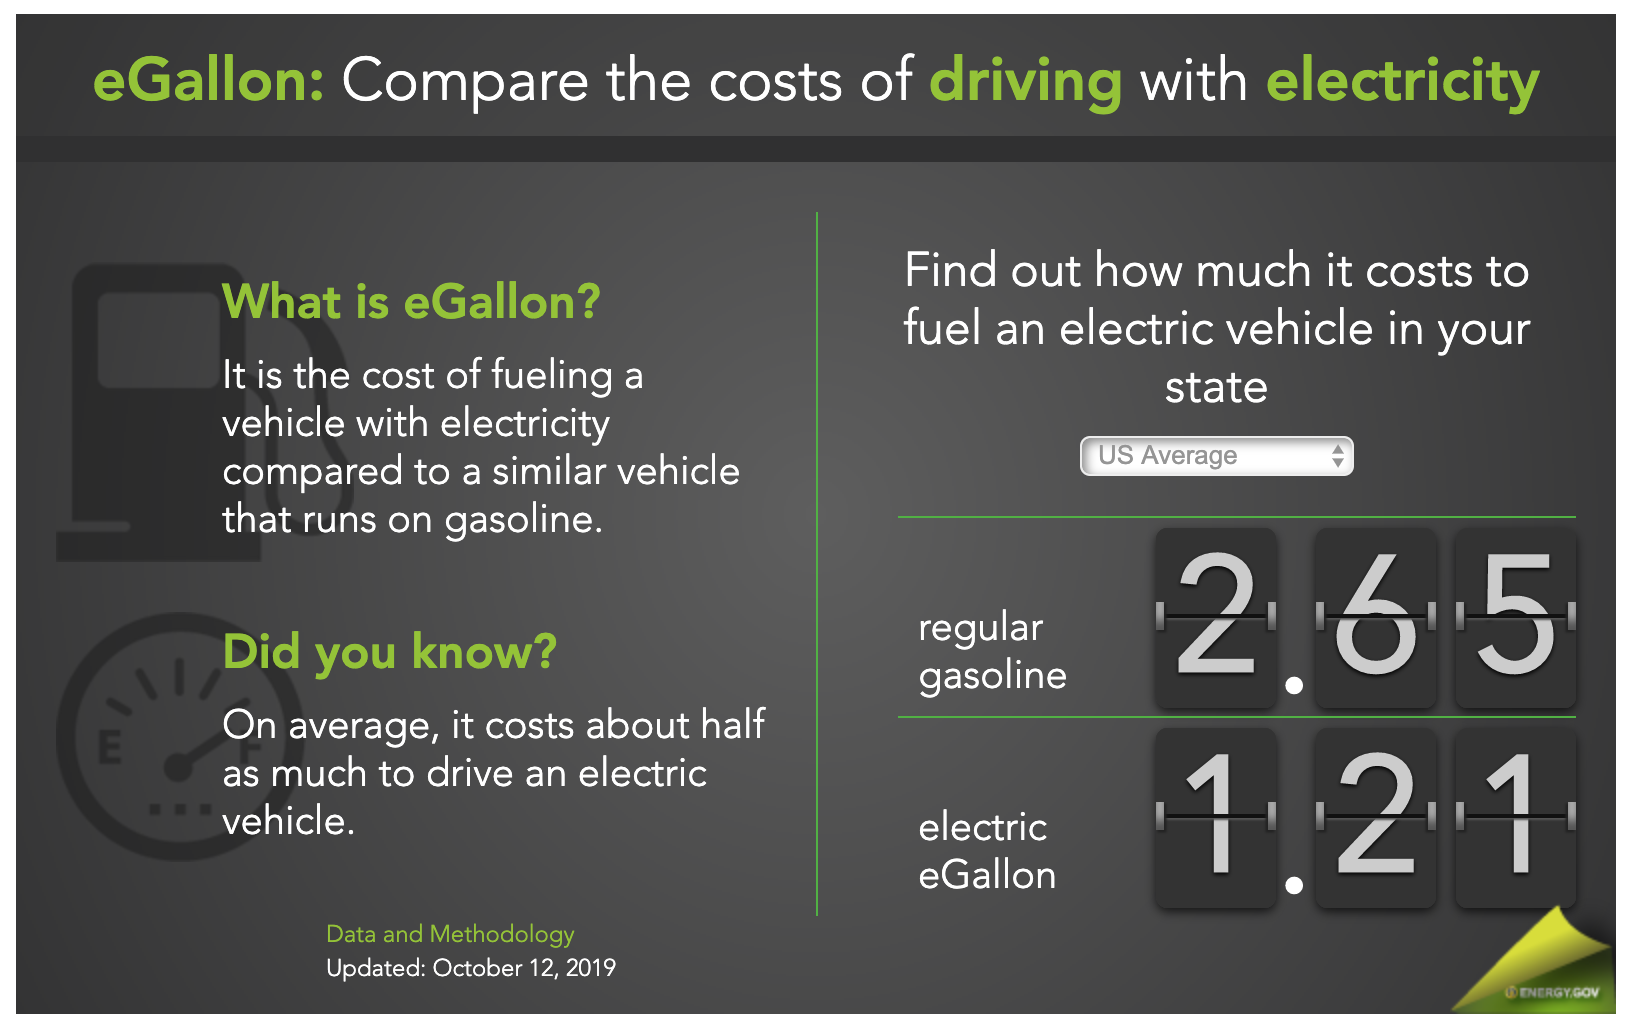 eGallon: compare the costs of driving with electricity